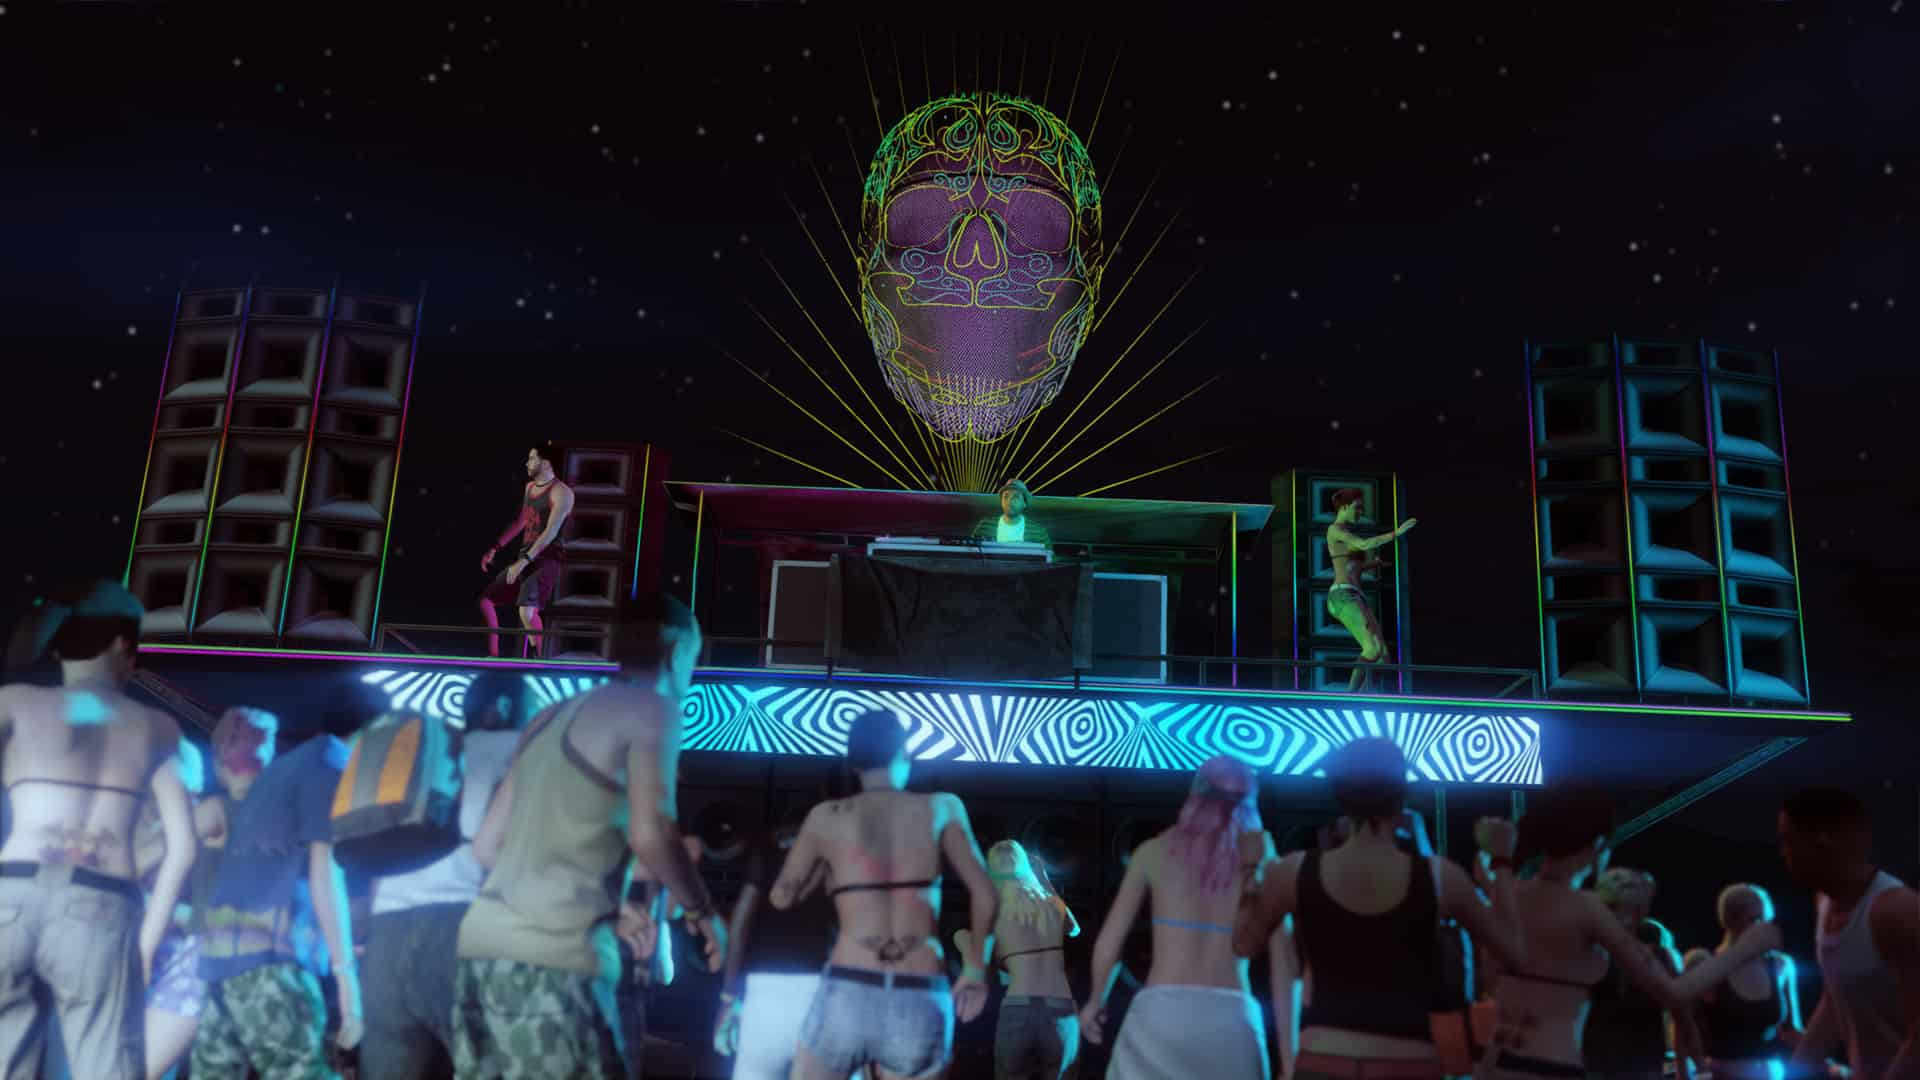 gta online nightclub entry fee